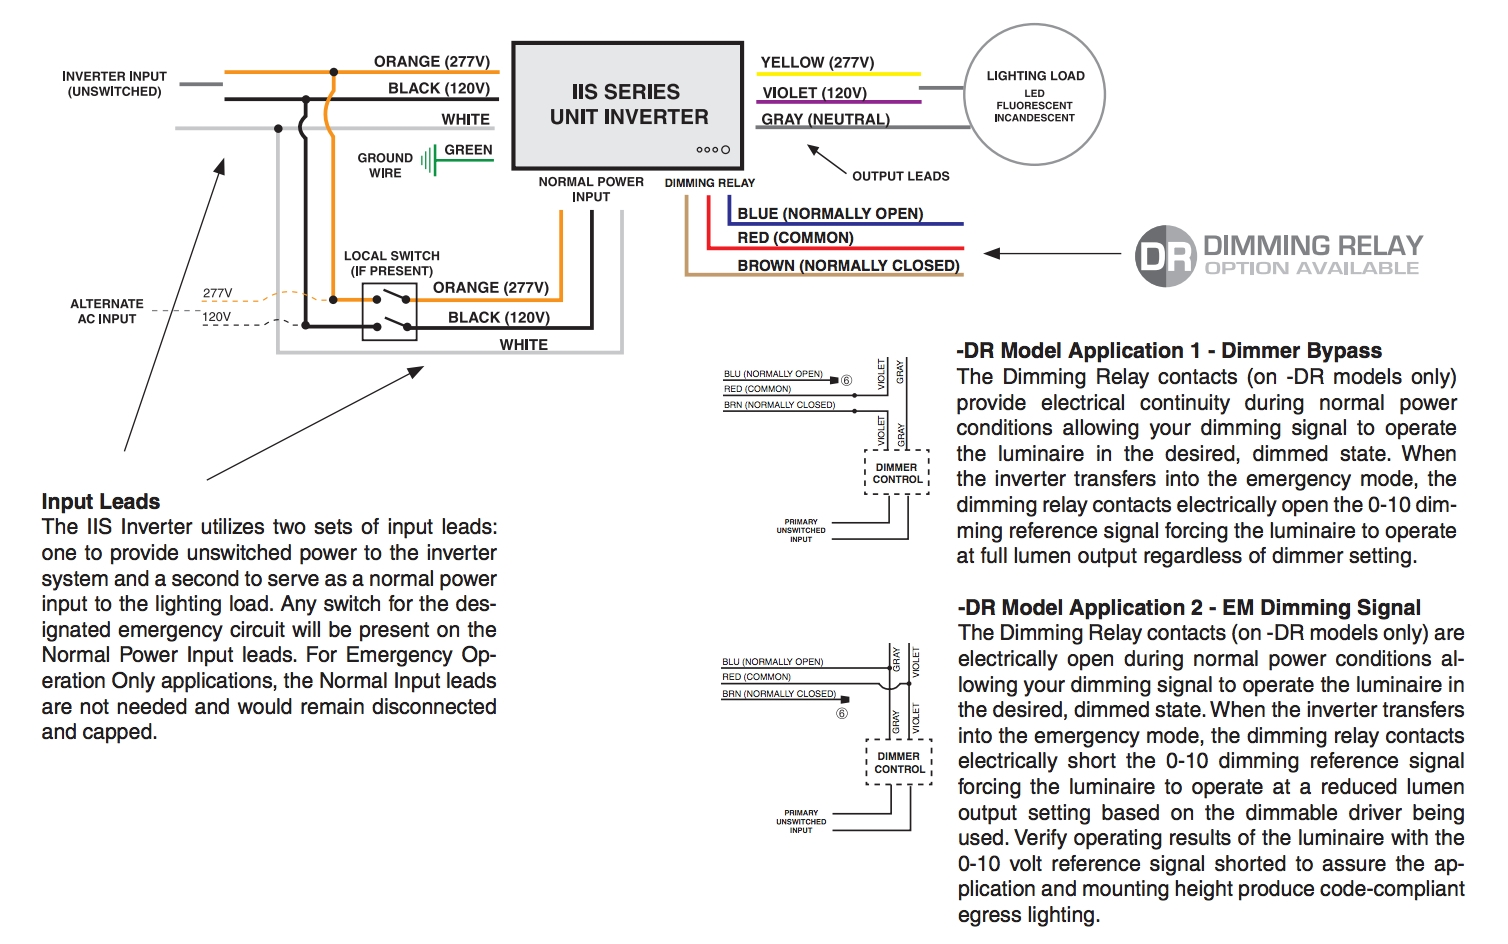 iota i 24 emergency ballast wiring diagram Download-Iota I 24 Emergency Ballast Wiring Diagram Iota I 24 Emergency Ballast Wiring Diagram Luxury 2-h